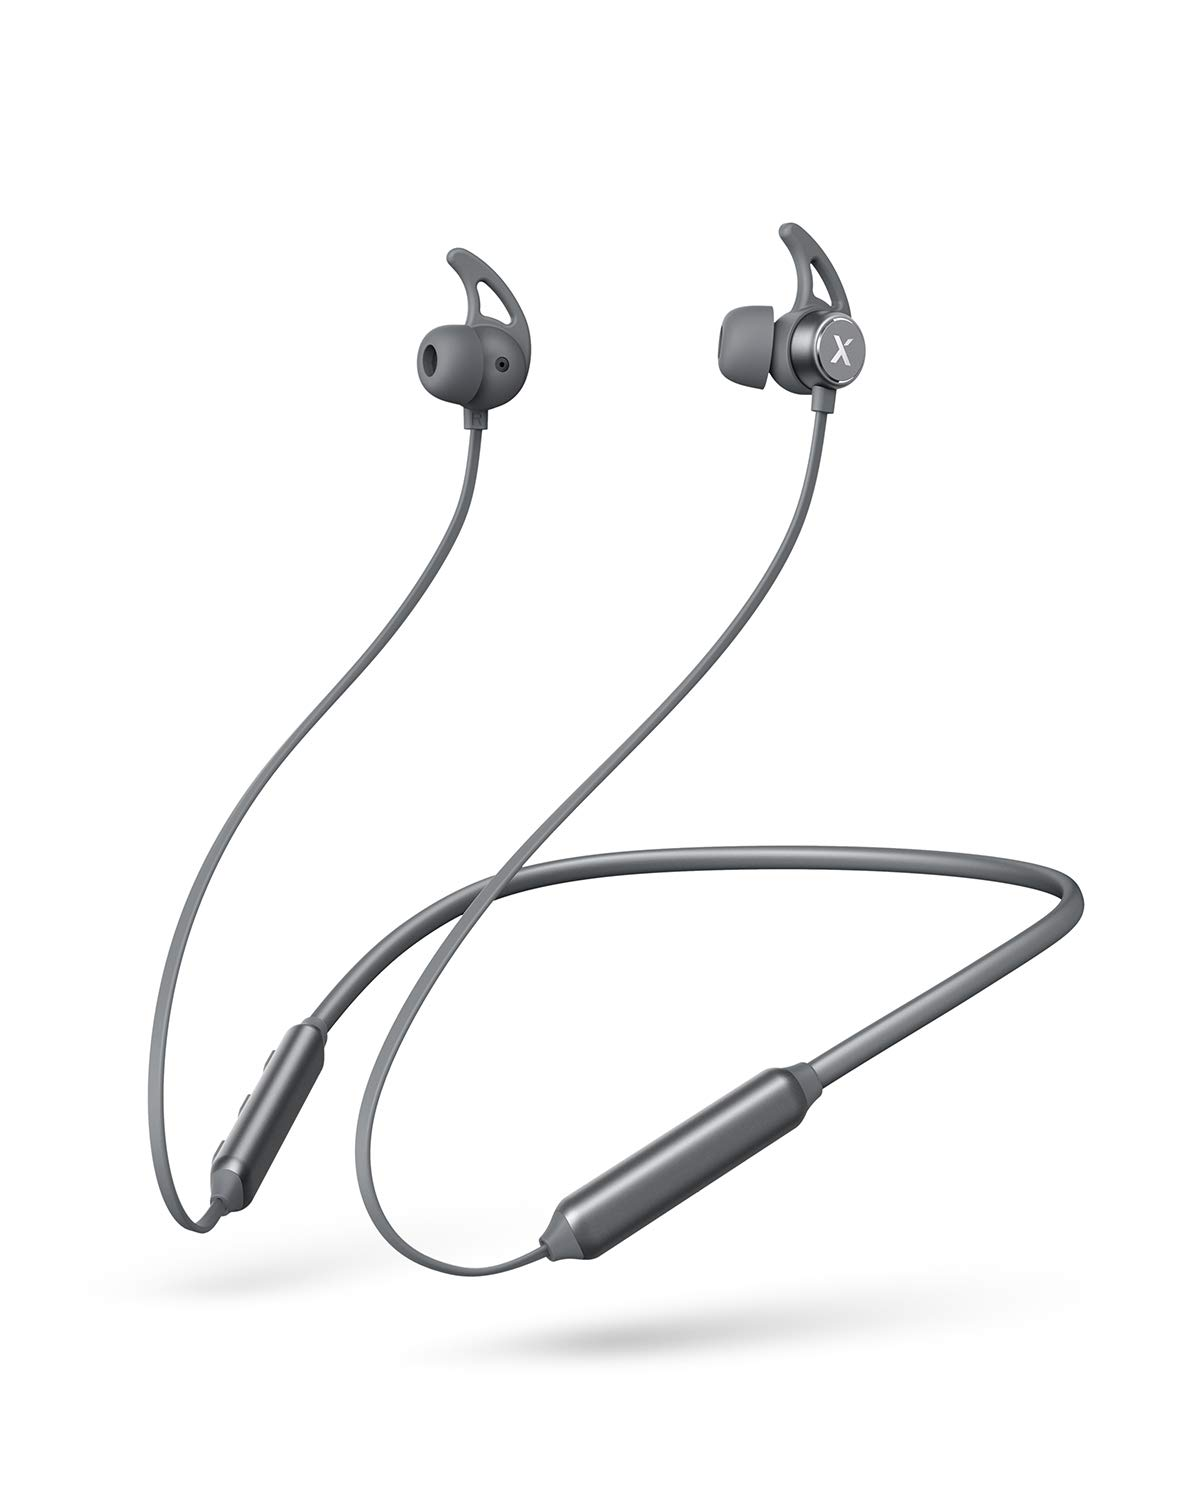 Xcentz Bluetooth Neckband Headphones Wireless Neckband Headset IPX7 Waterproof Bluetooth 5.0 Sports Earphones for Workout, Running, Gym,8 Hours Playtime, Magnetic Wireless Earbuds, Grey